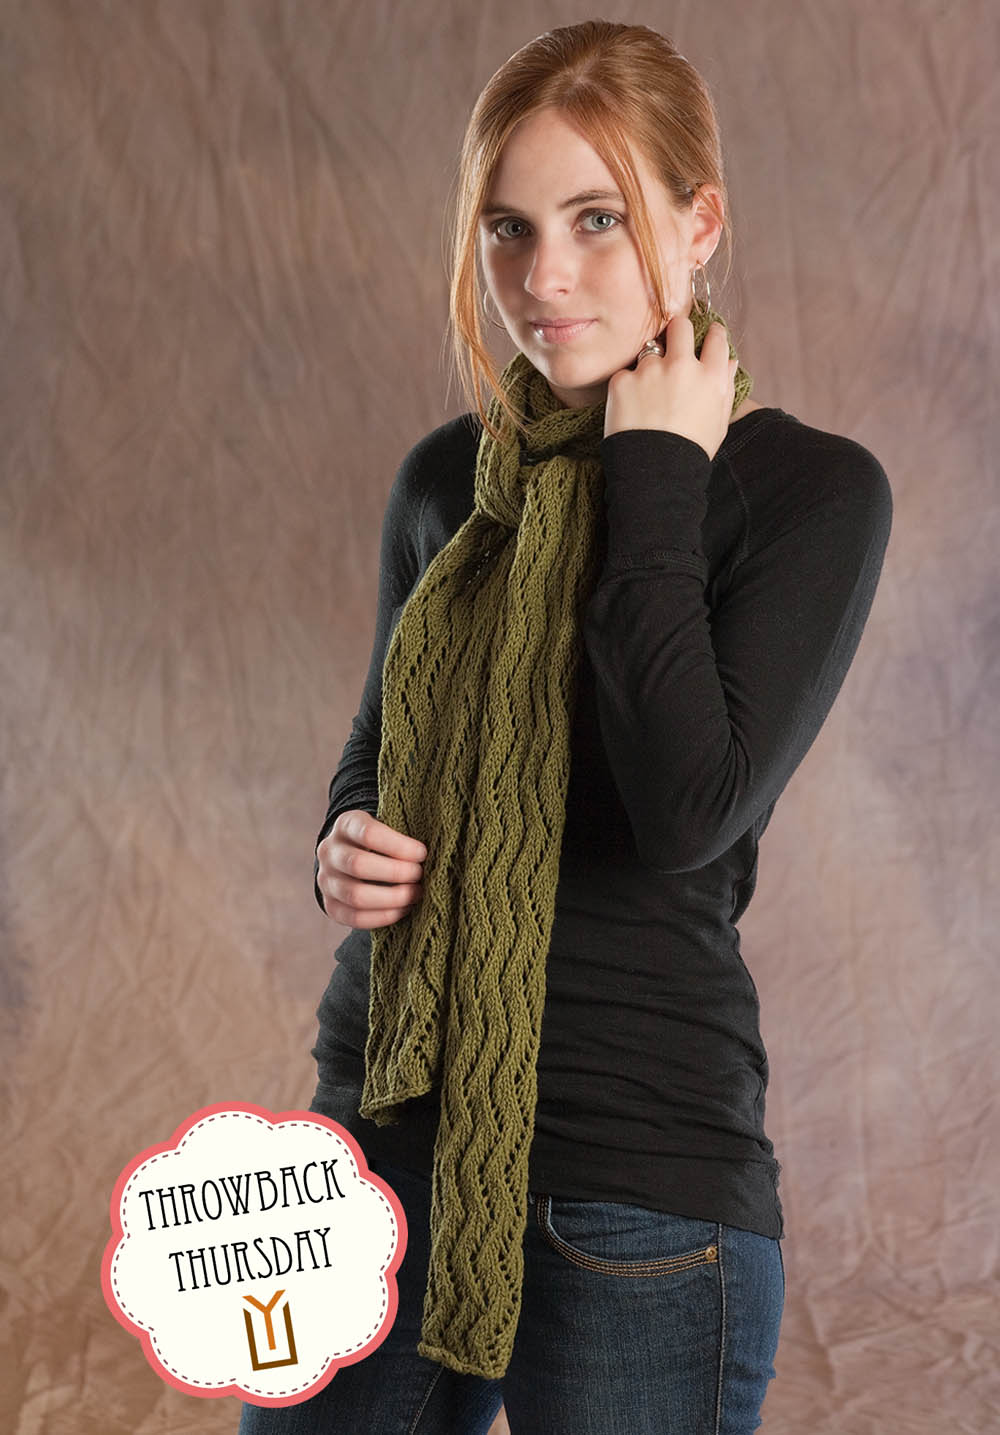 Throwback Thursday Zig Zag Lace Scarf